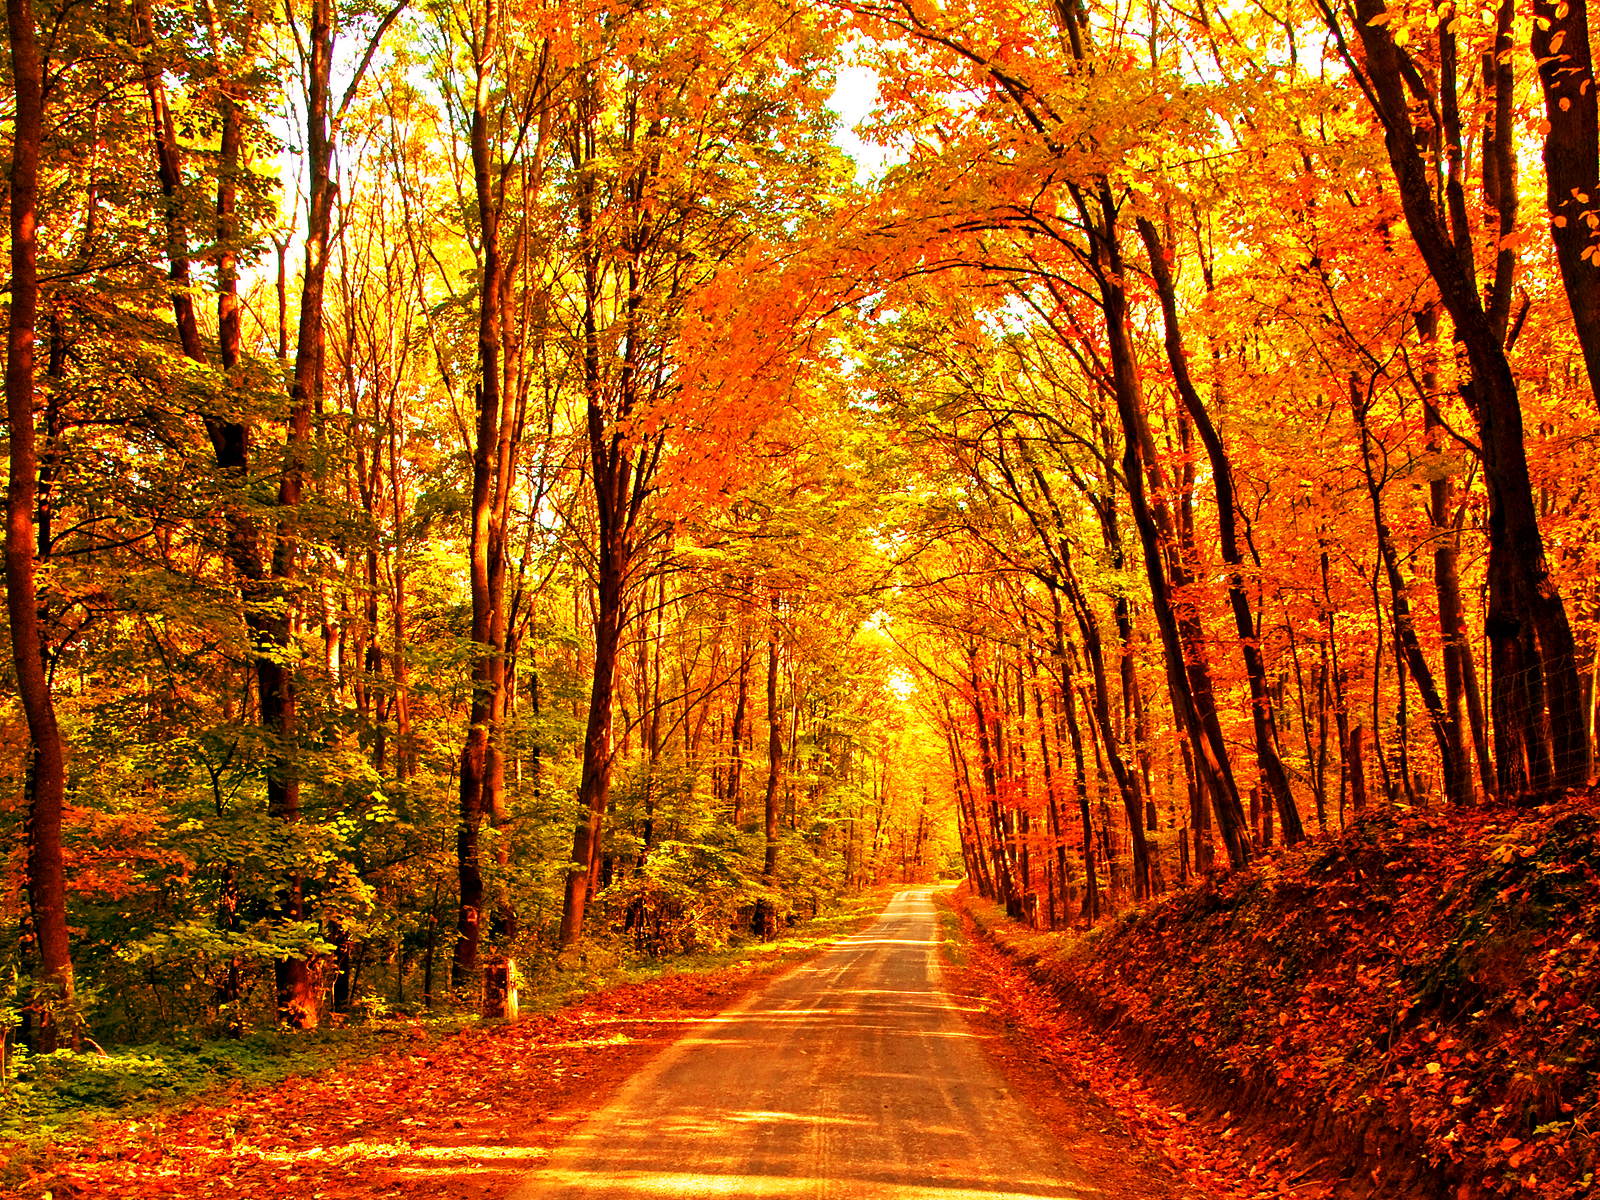 September fall wallpaper the pity party wealthy republicans conservatives have been trying to sell two conflicting narratives in the last three years and the oxymoronic nature of those narratives might have started voltagebd Images